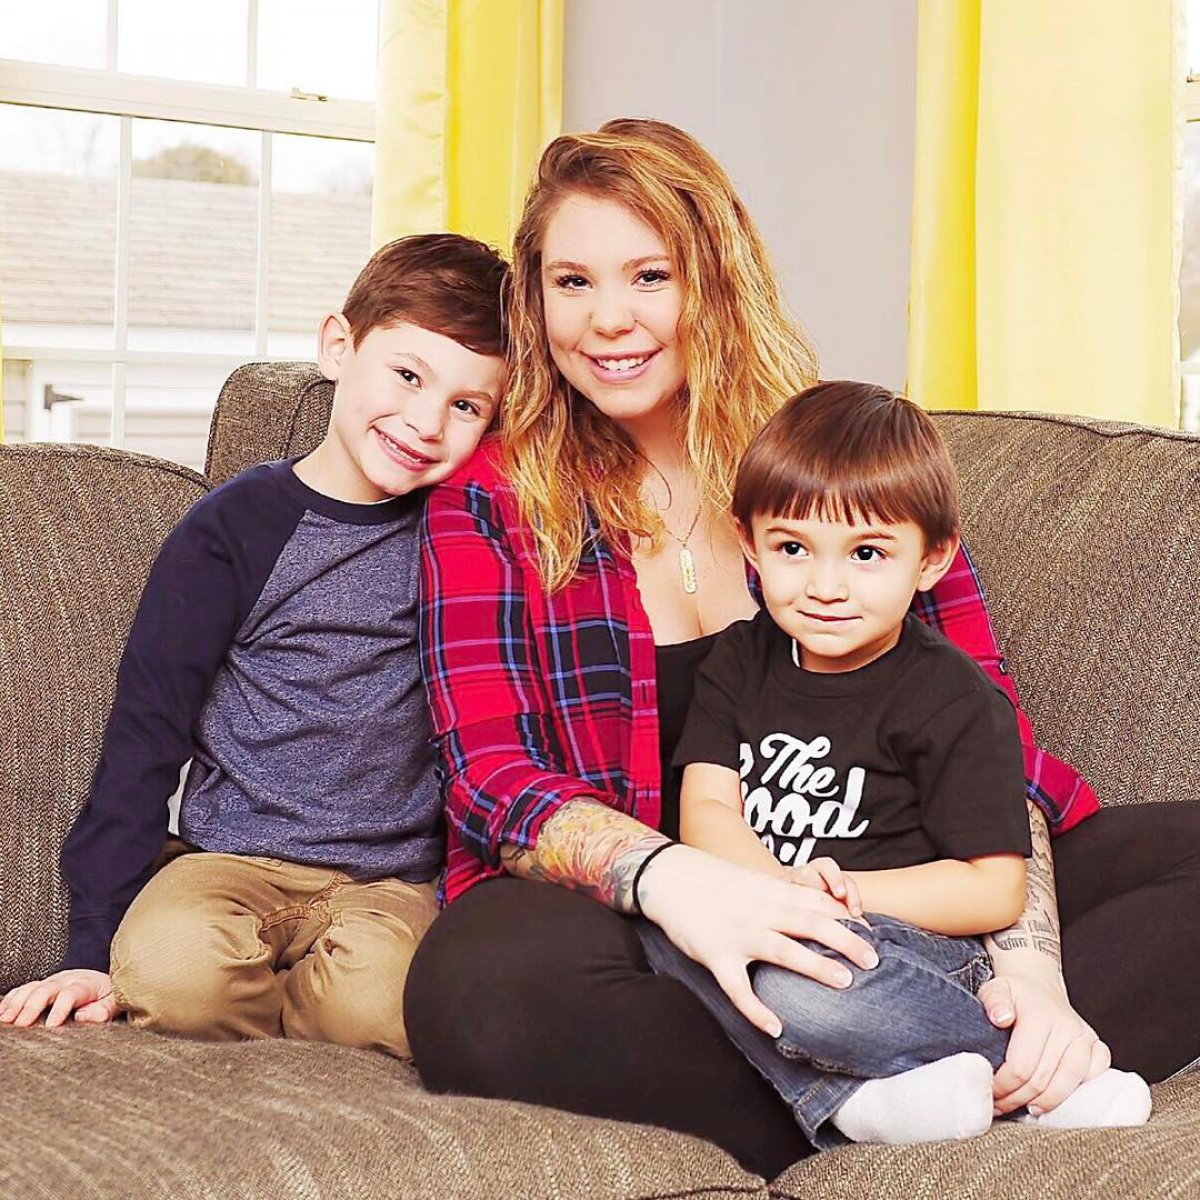 Teen Mom 2\' star Kailyn Lowry welcomes third son - Reality TV World